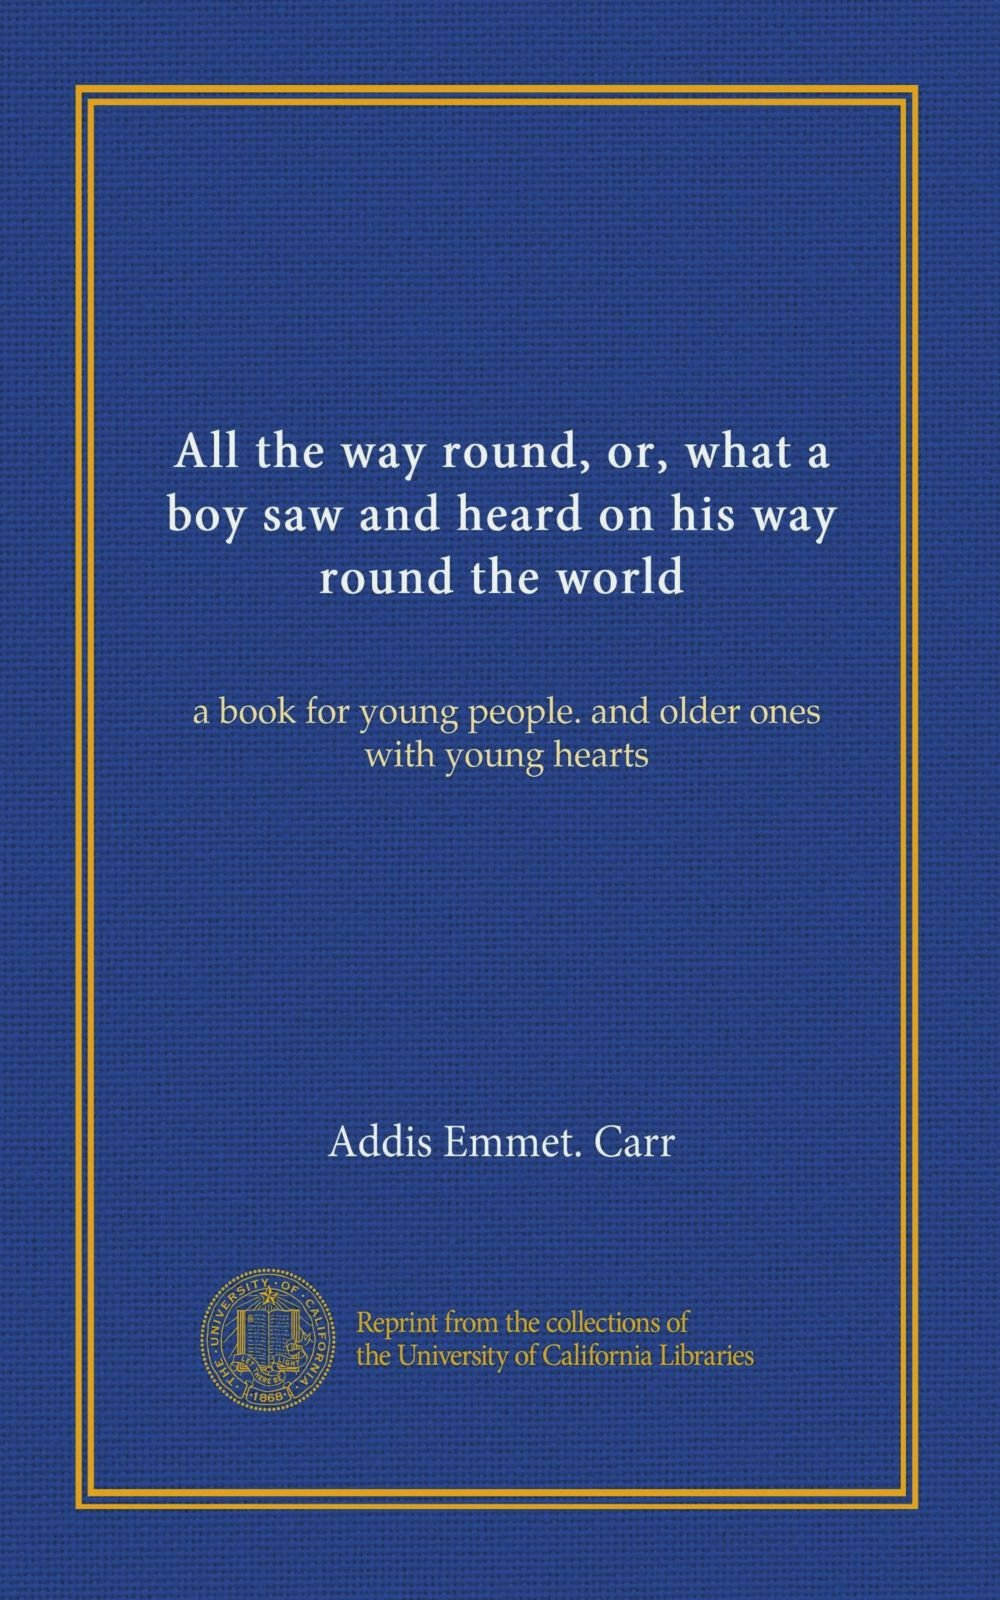 Read Online All the way round, or, what a boy saw and heard on his way round the world: a book for young people. and older ones with young hearts ebook